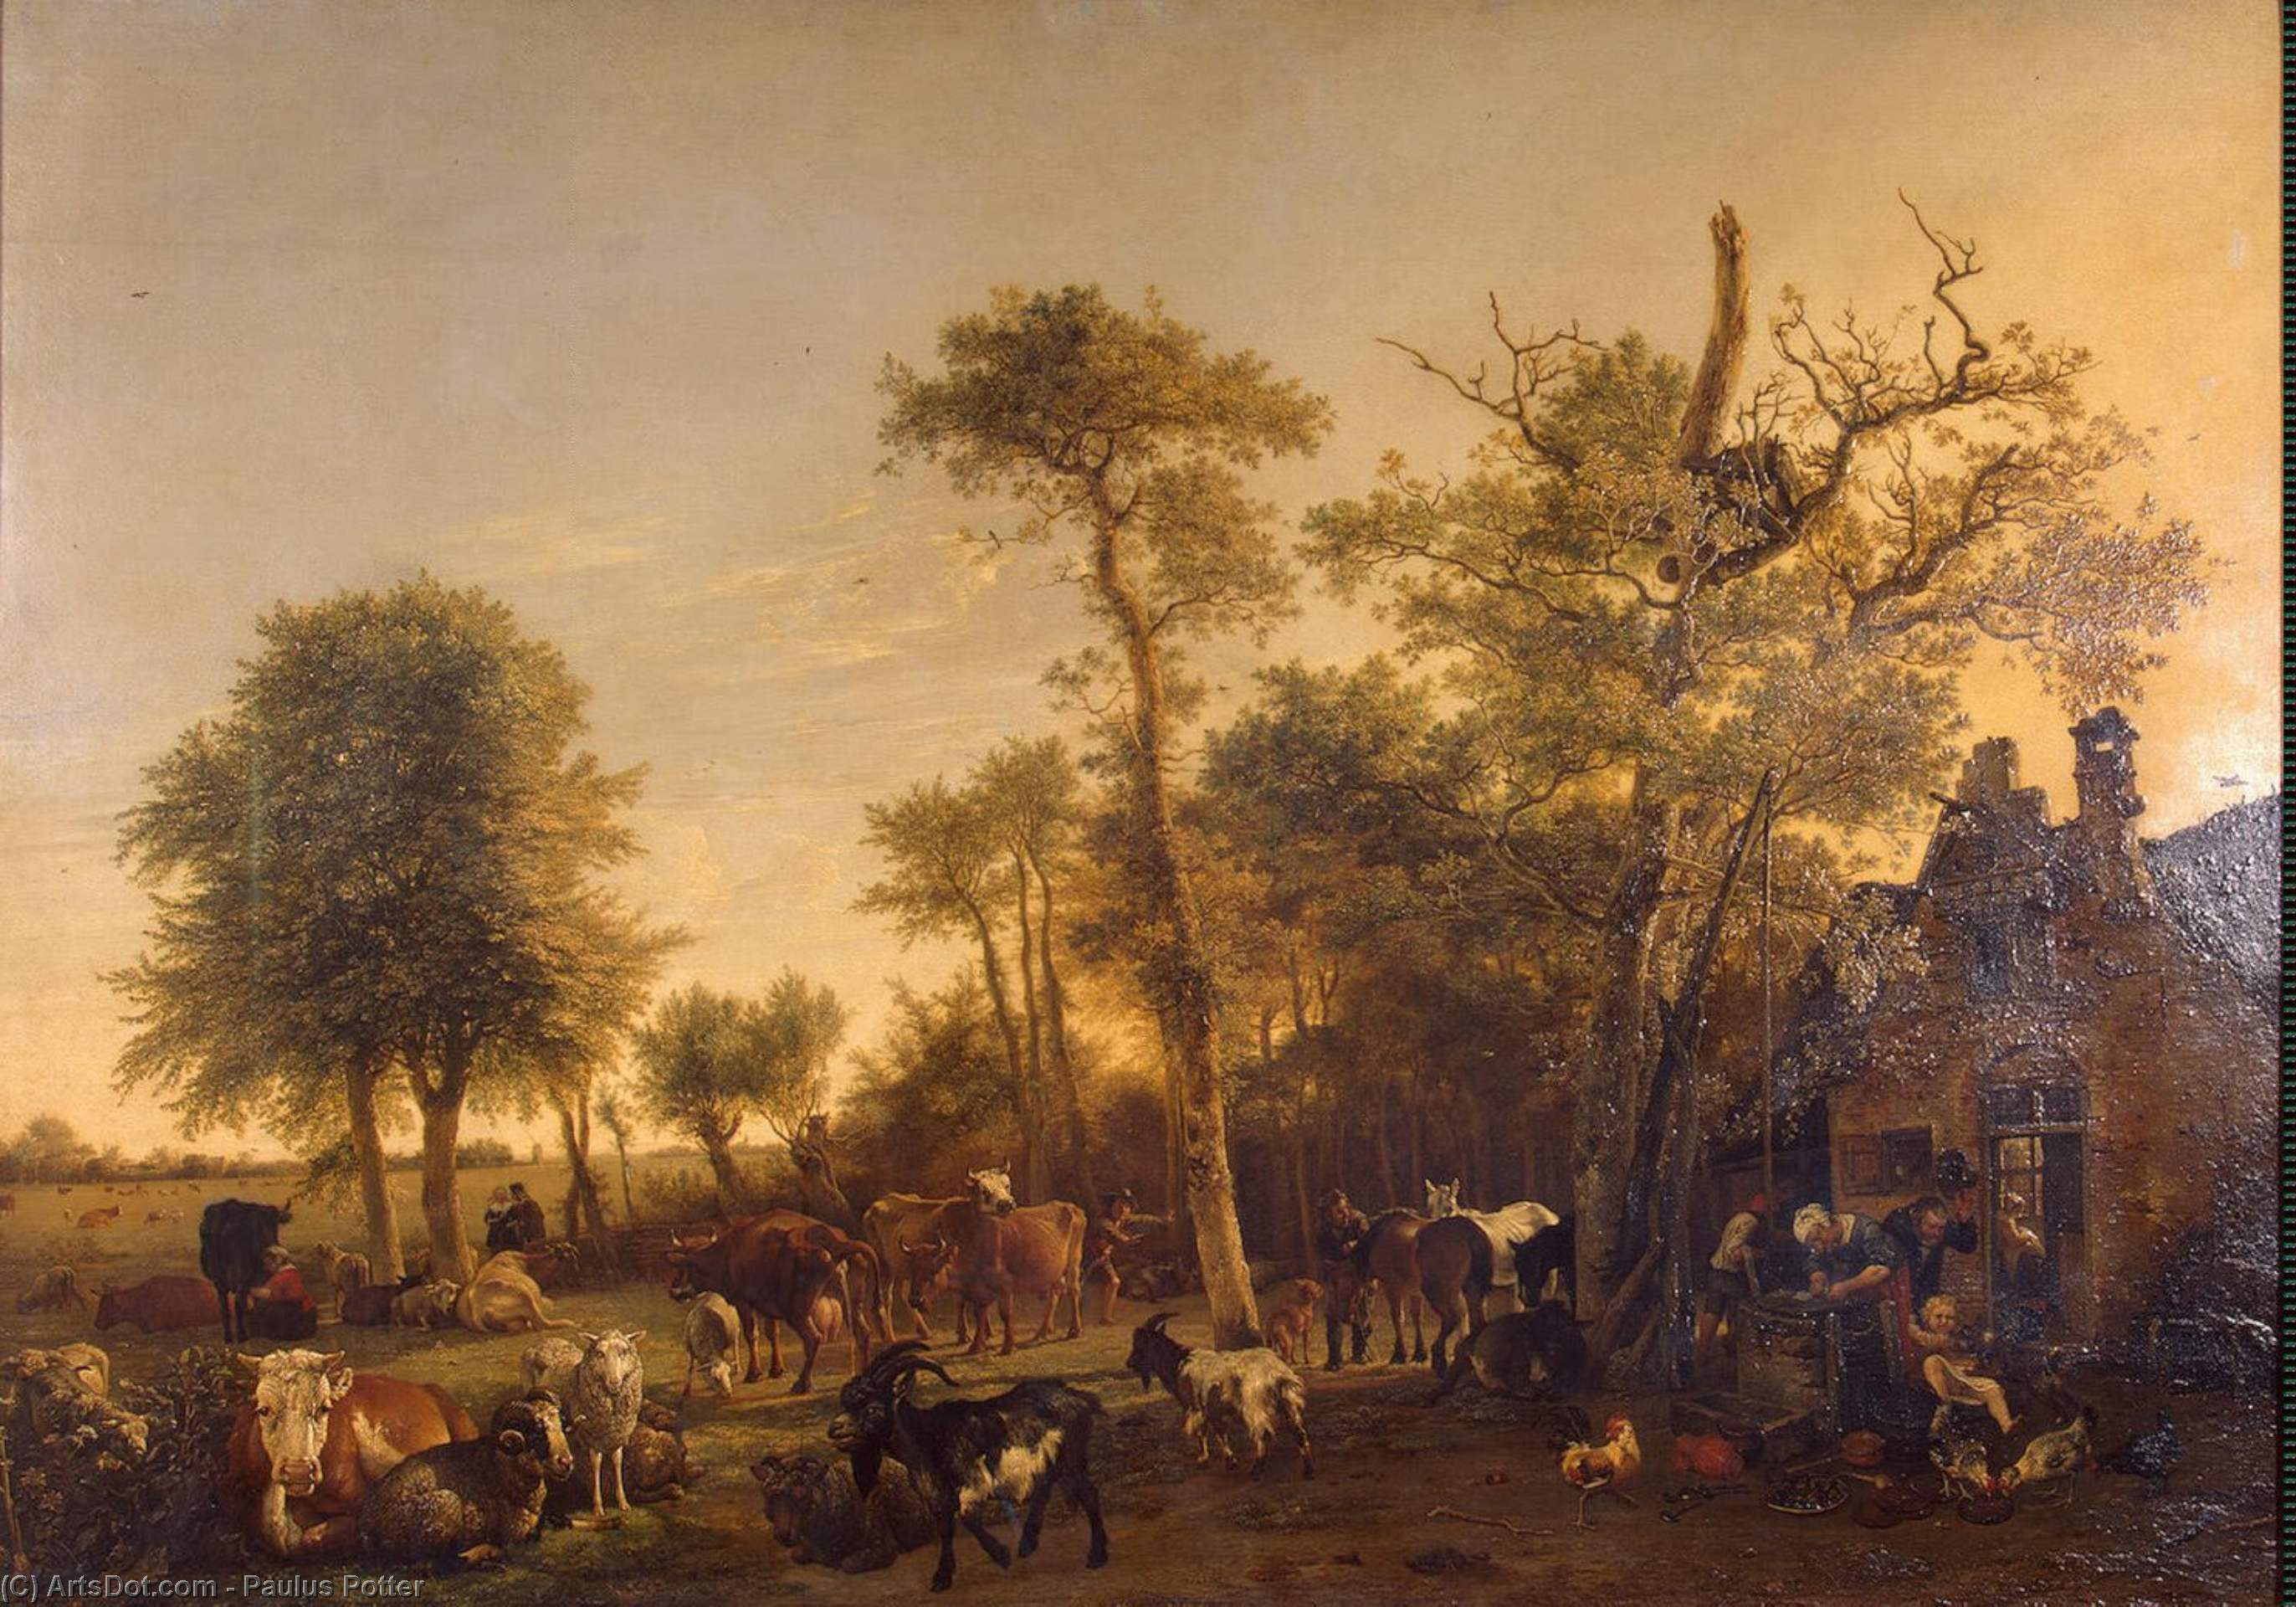 Buy Museum Art Reproductions : The Farm, 1649 by Paulus Potter (1625-1654, Netherlands) | ArtsDot.com